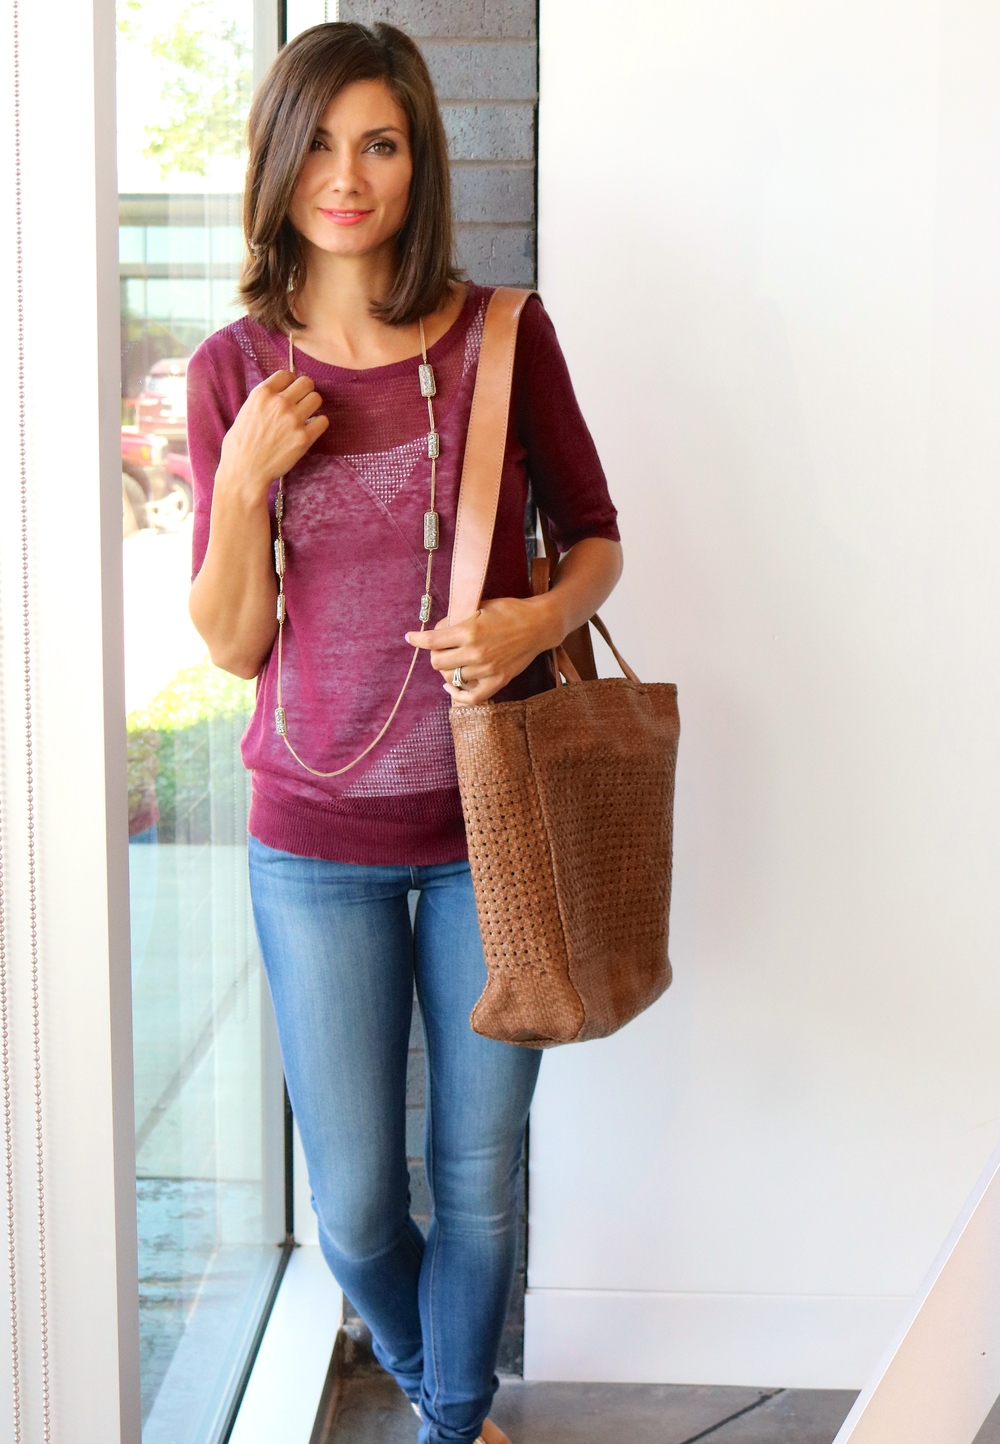 Linen Diagonal Open Stich Short Sleeve Sweater on sale for $160.00; DL1961 Florence Skinny Jeans in Prinia $178.00